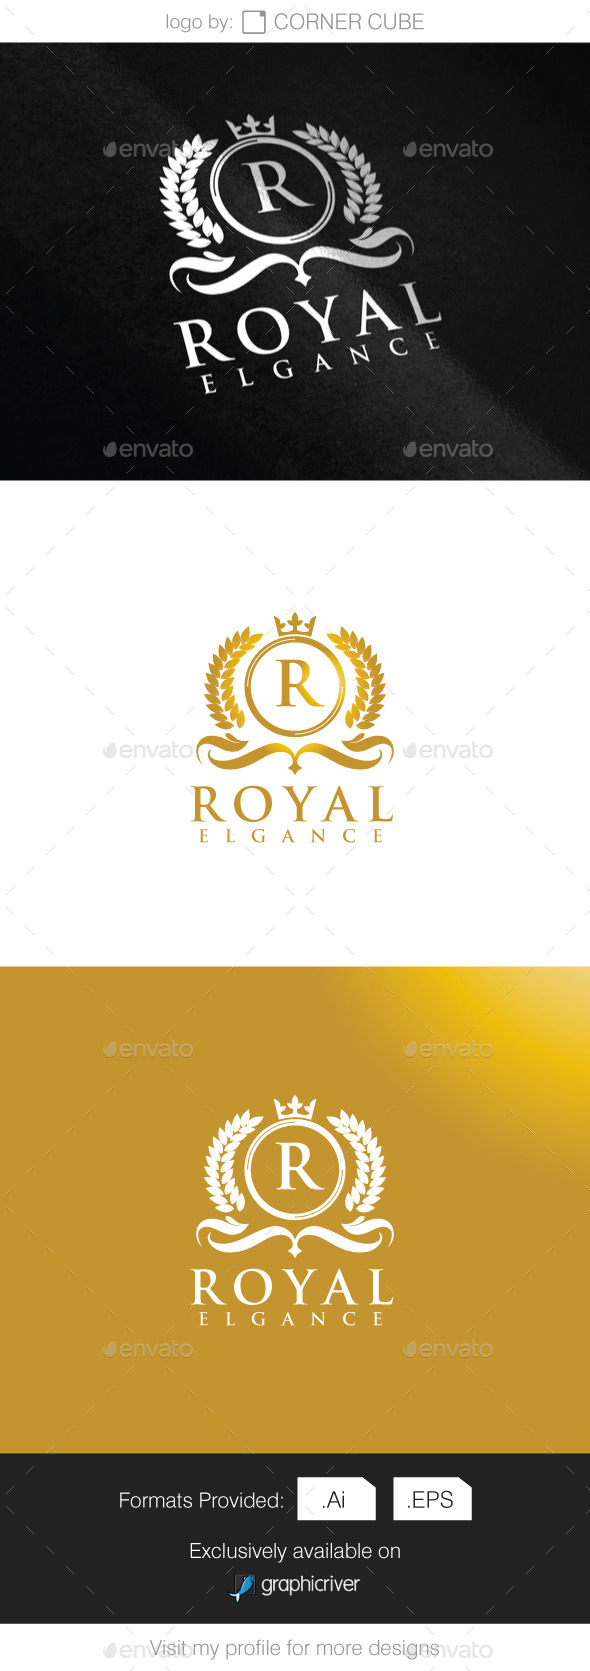 GraphicRiver Royal Elegance Logo 9272730